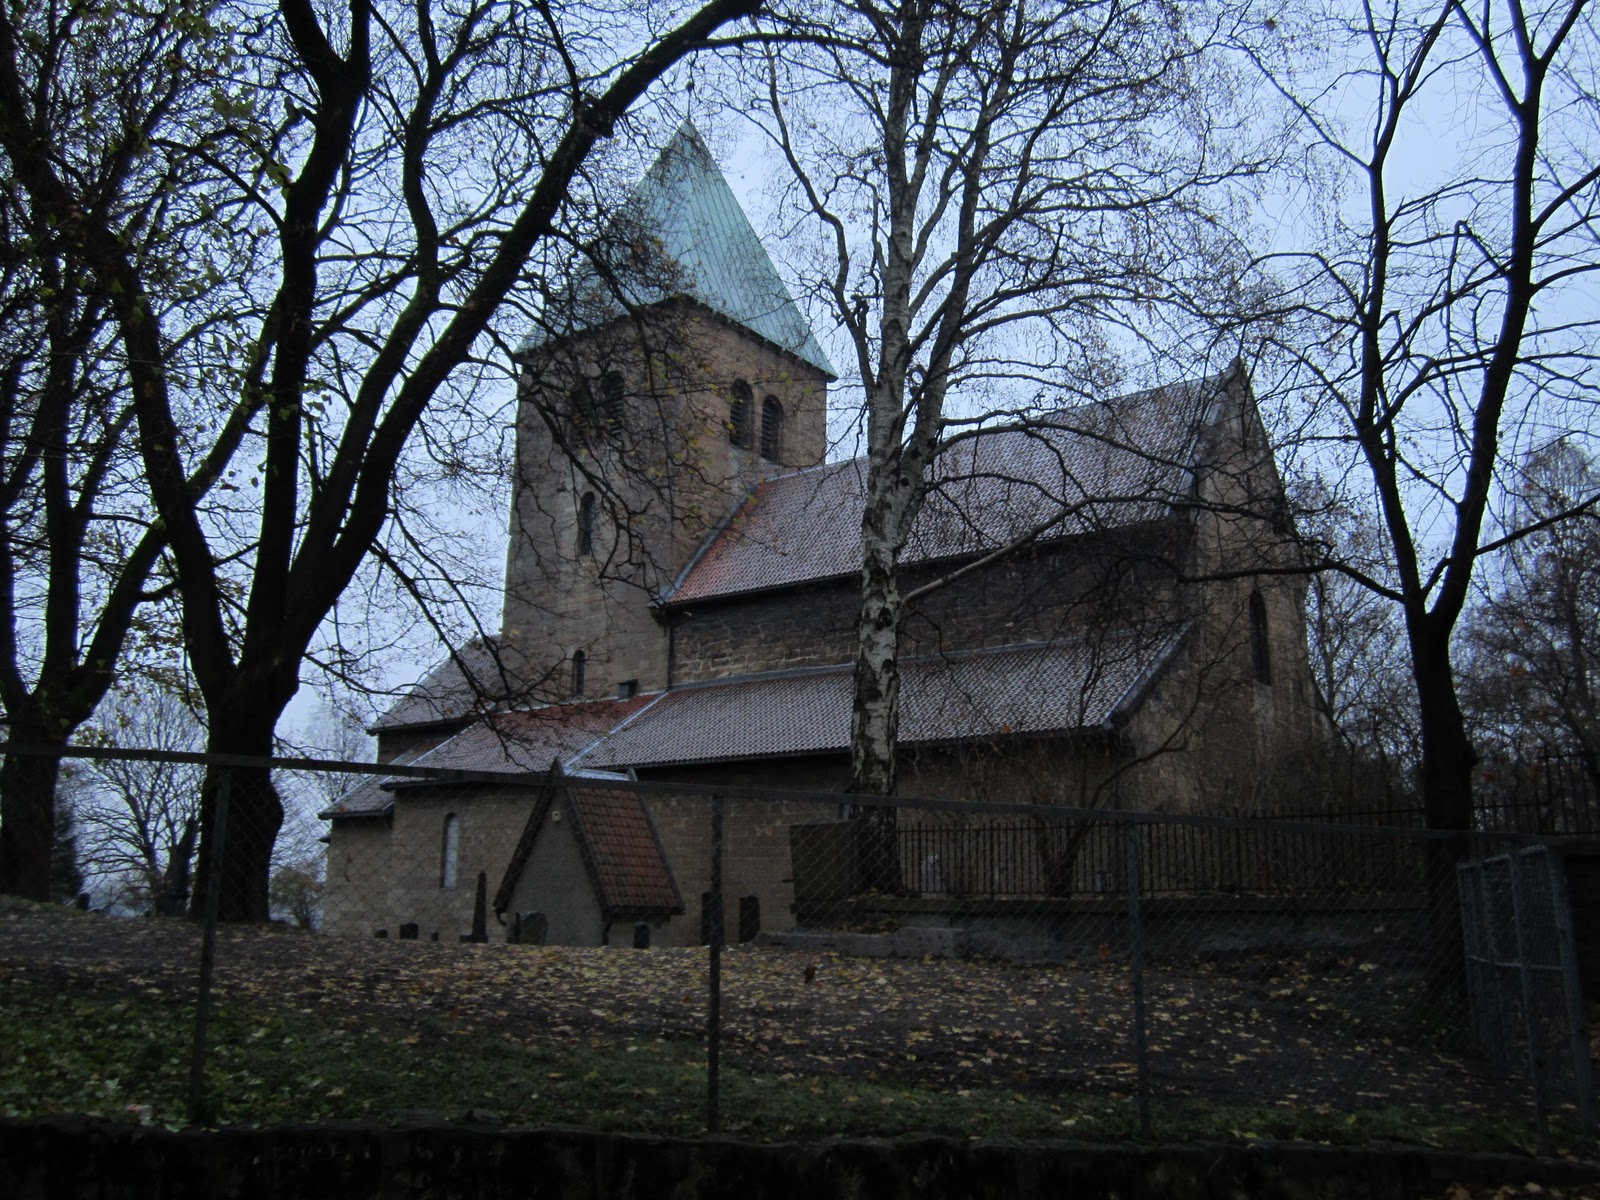 Early Medieval Churches Visit a Medieval Church in